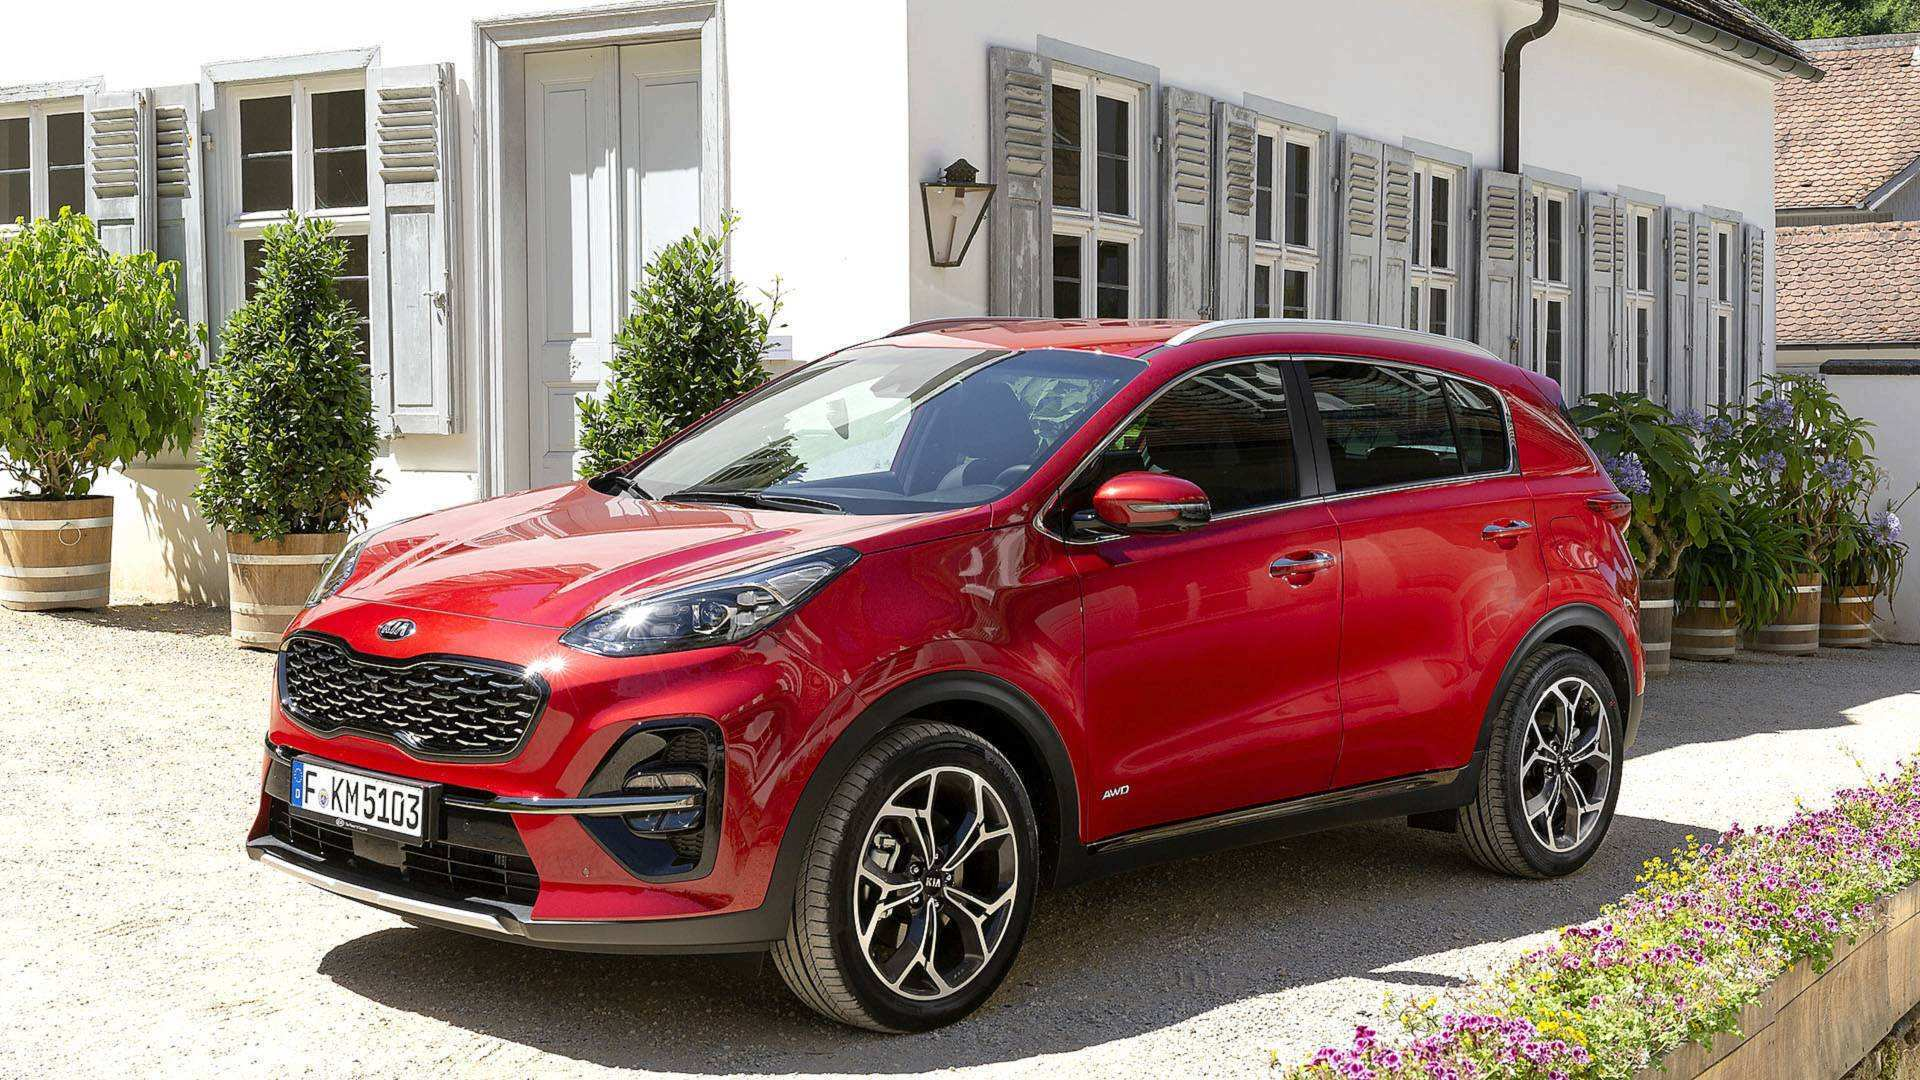 51 The Best Kia Diesel 2019 Prices